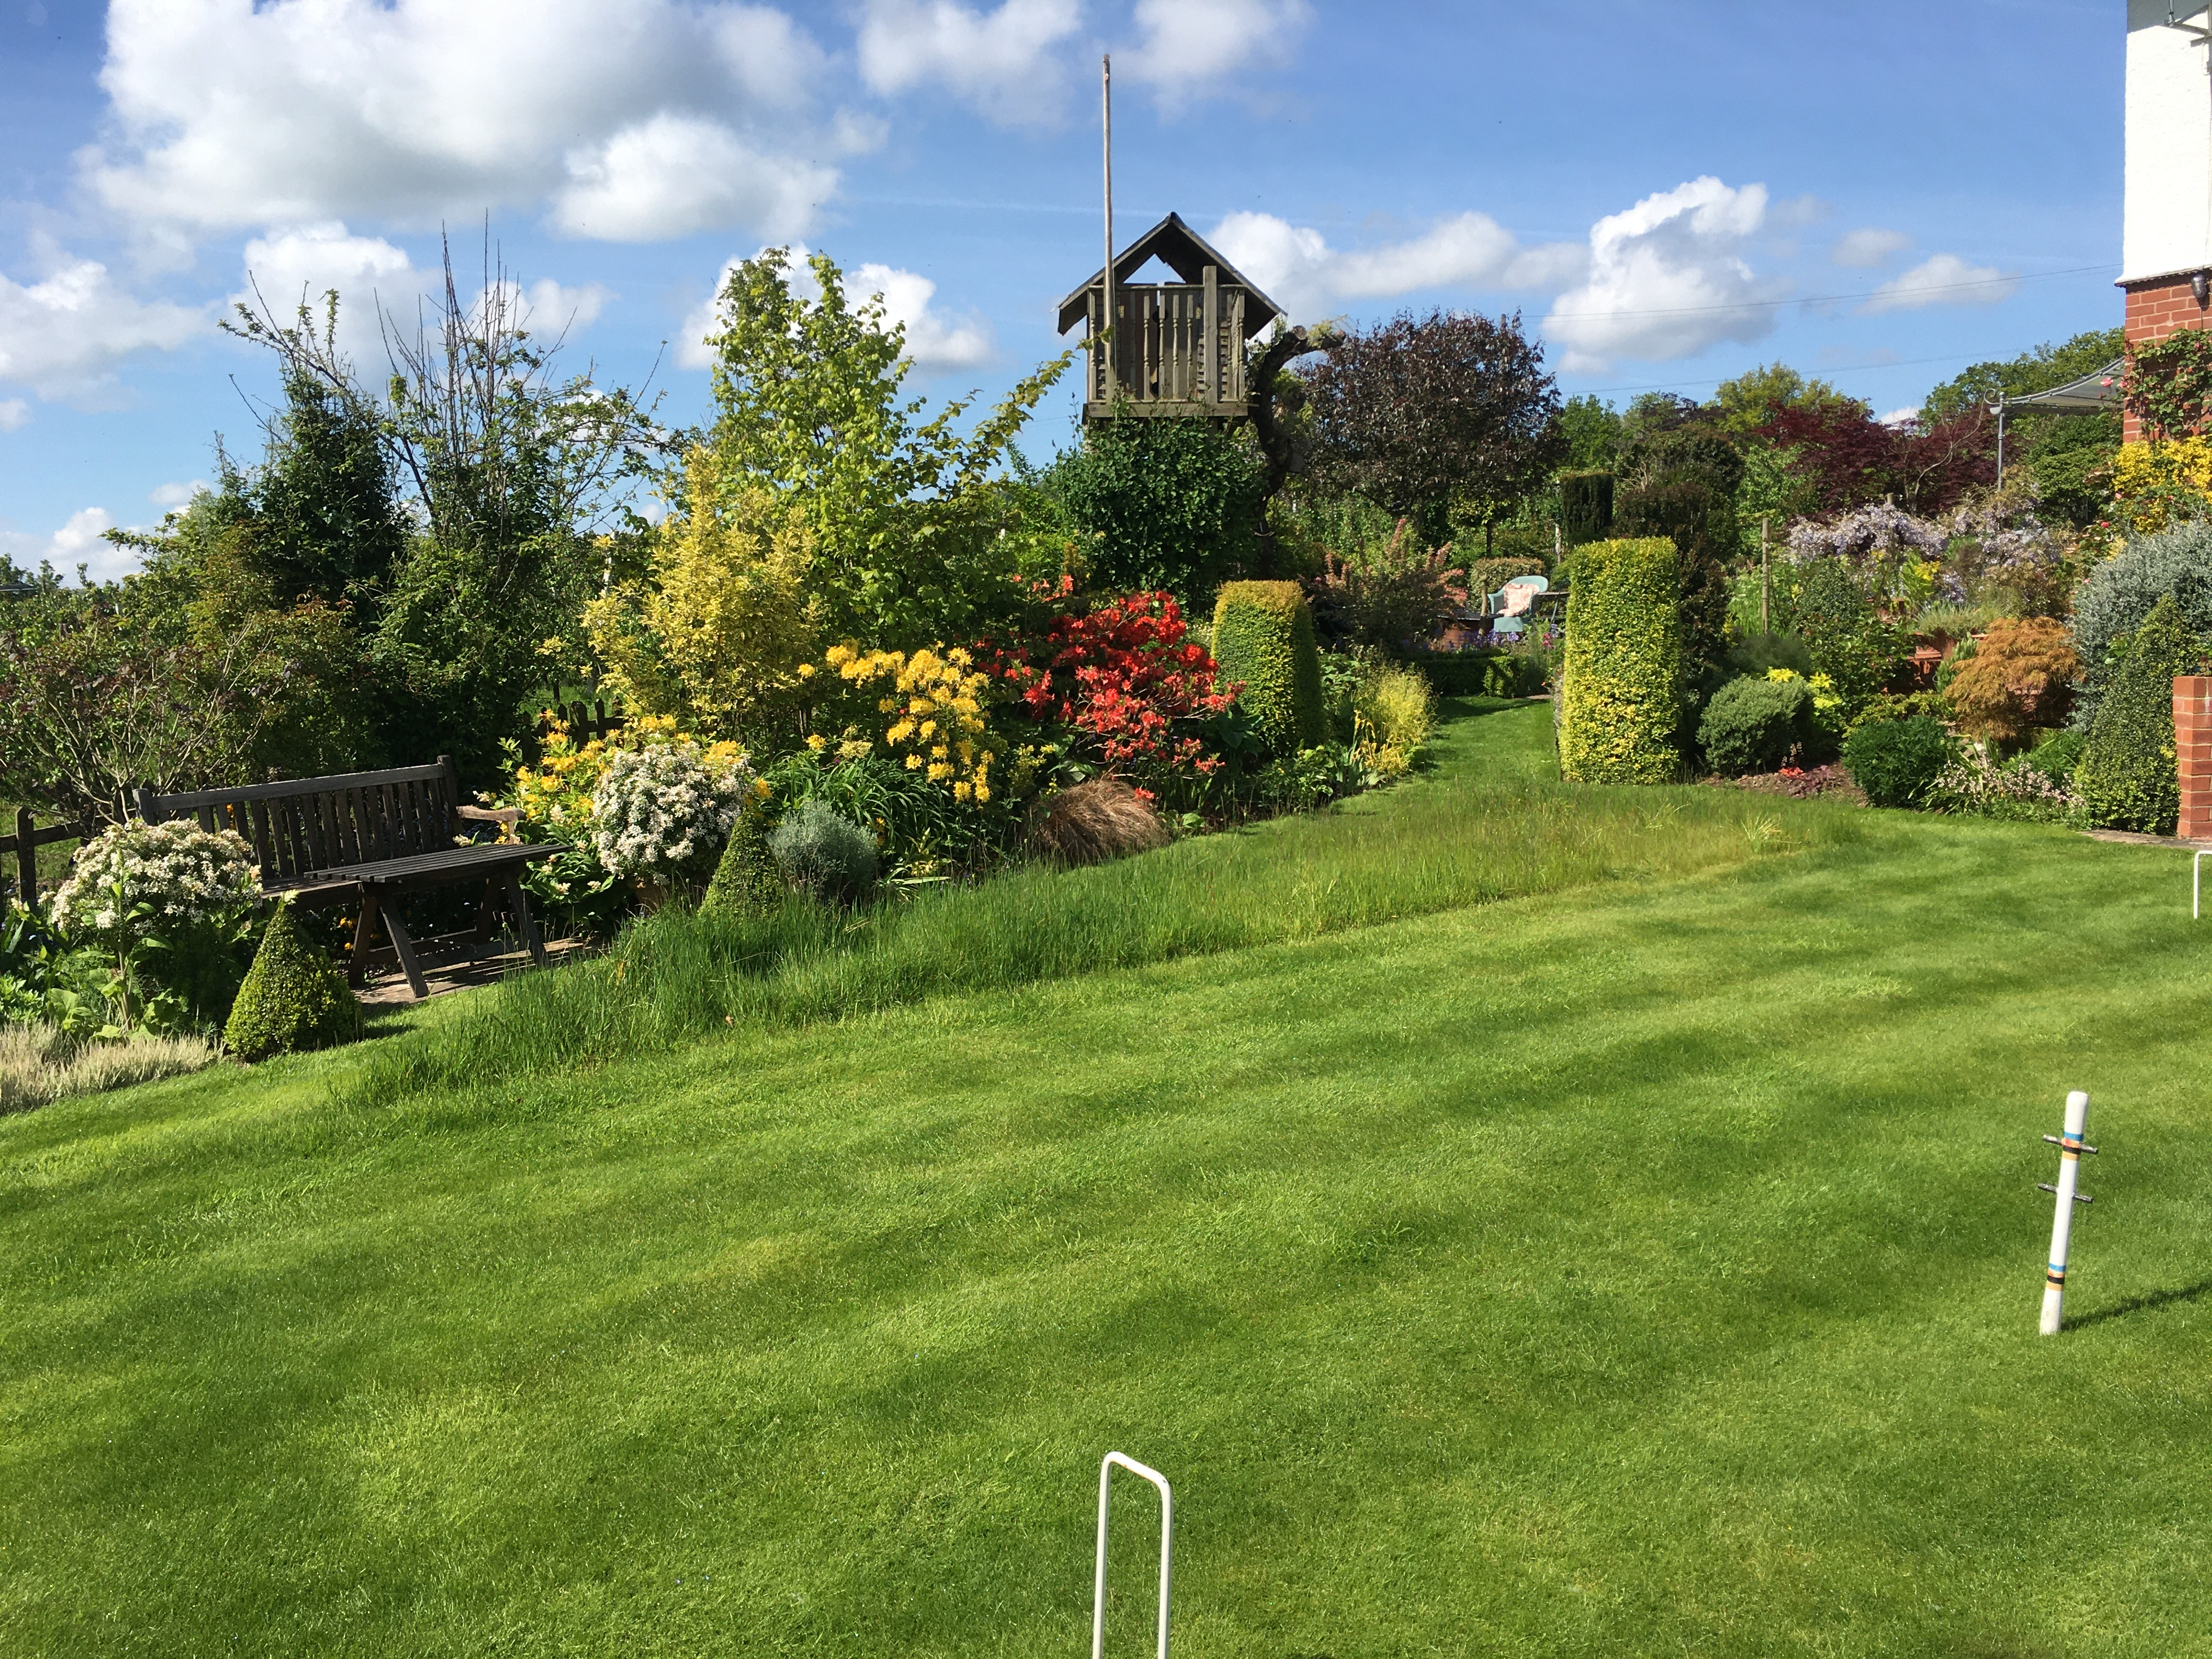 Putley Open Gardens - Large lawn and flowers